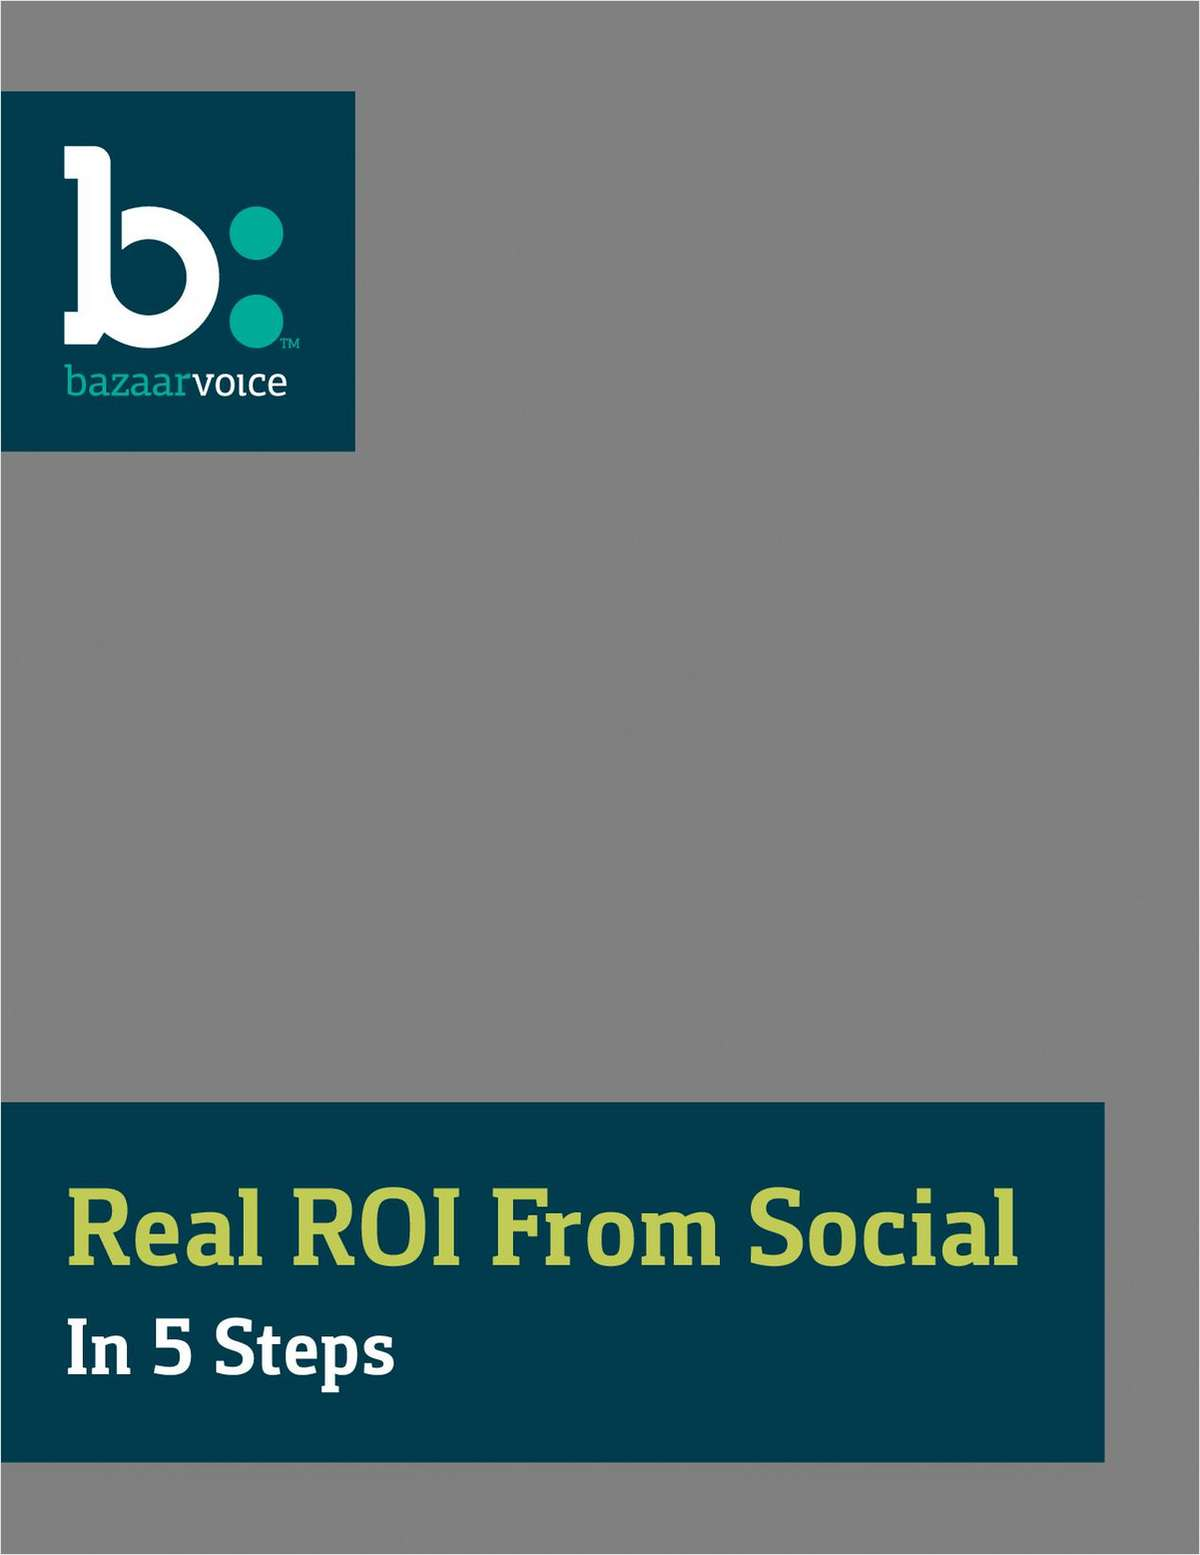 Capture Your ROI From Social In 5 Steps